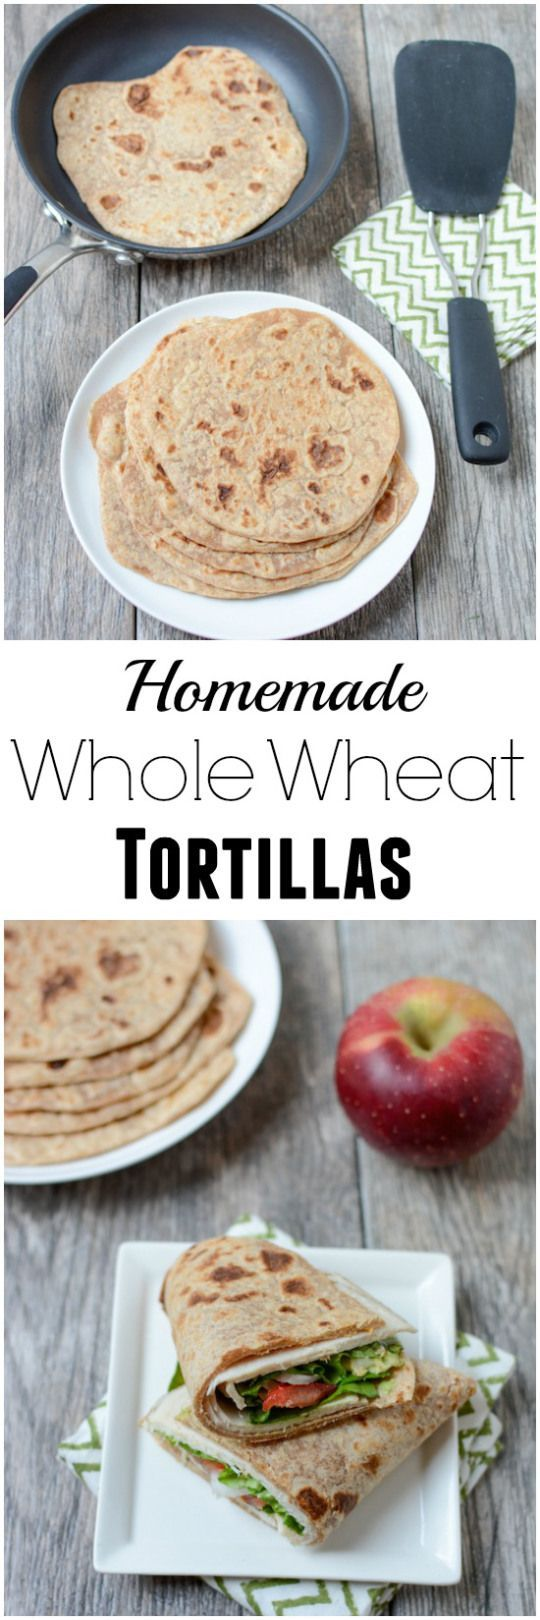 Made with just 4 ingredients, this recipe for Homemade Whole Wheat Tortillas is…